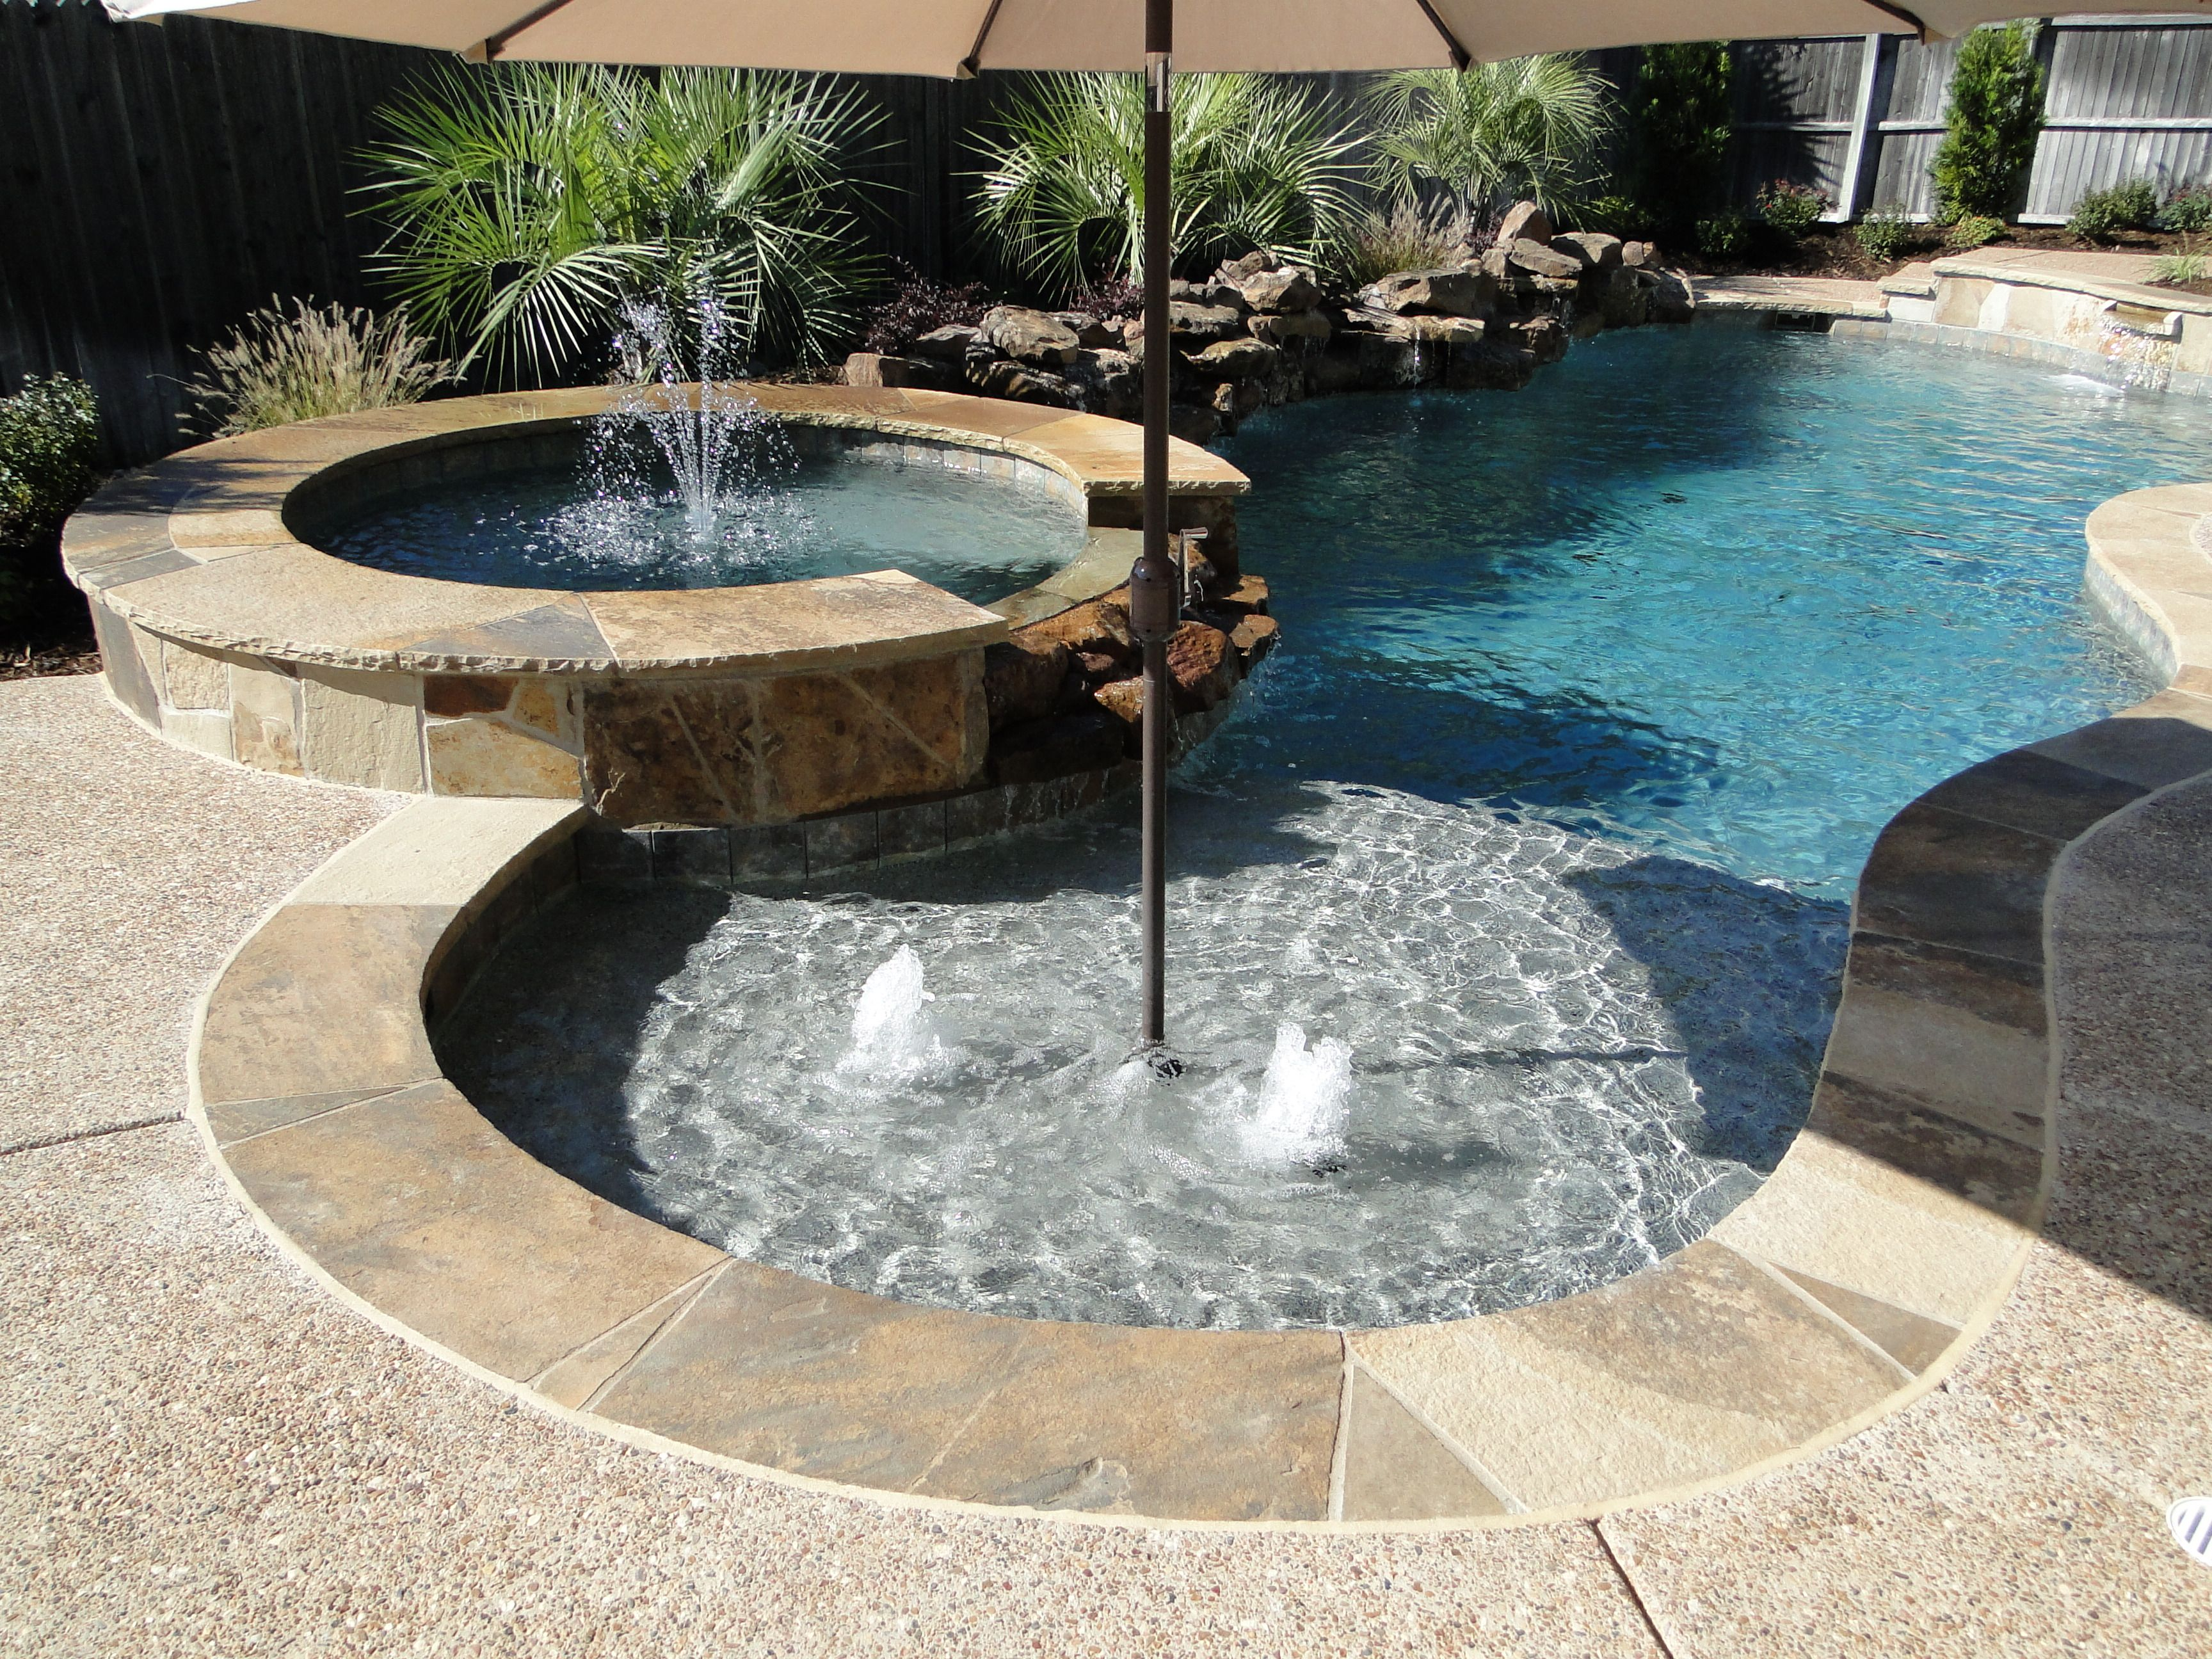 Tanning Ledge Gusher Fountains Raised Spa Backyard